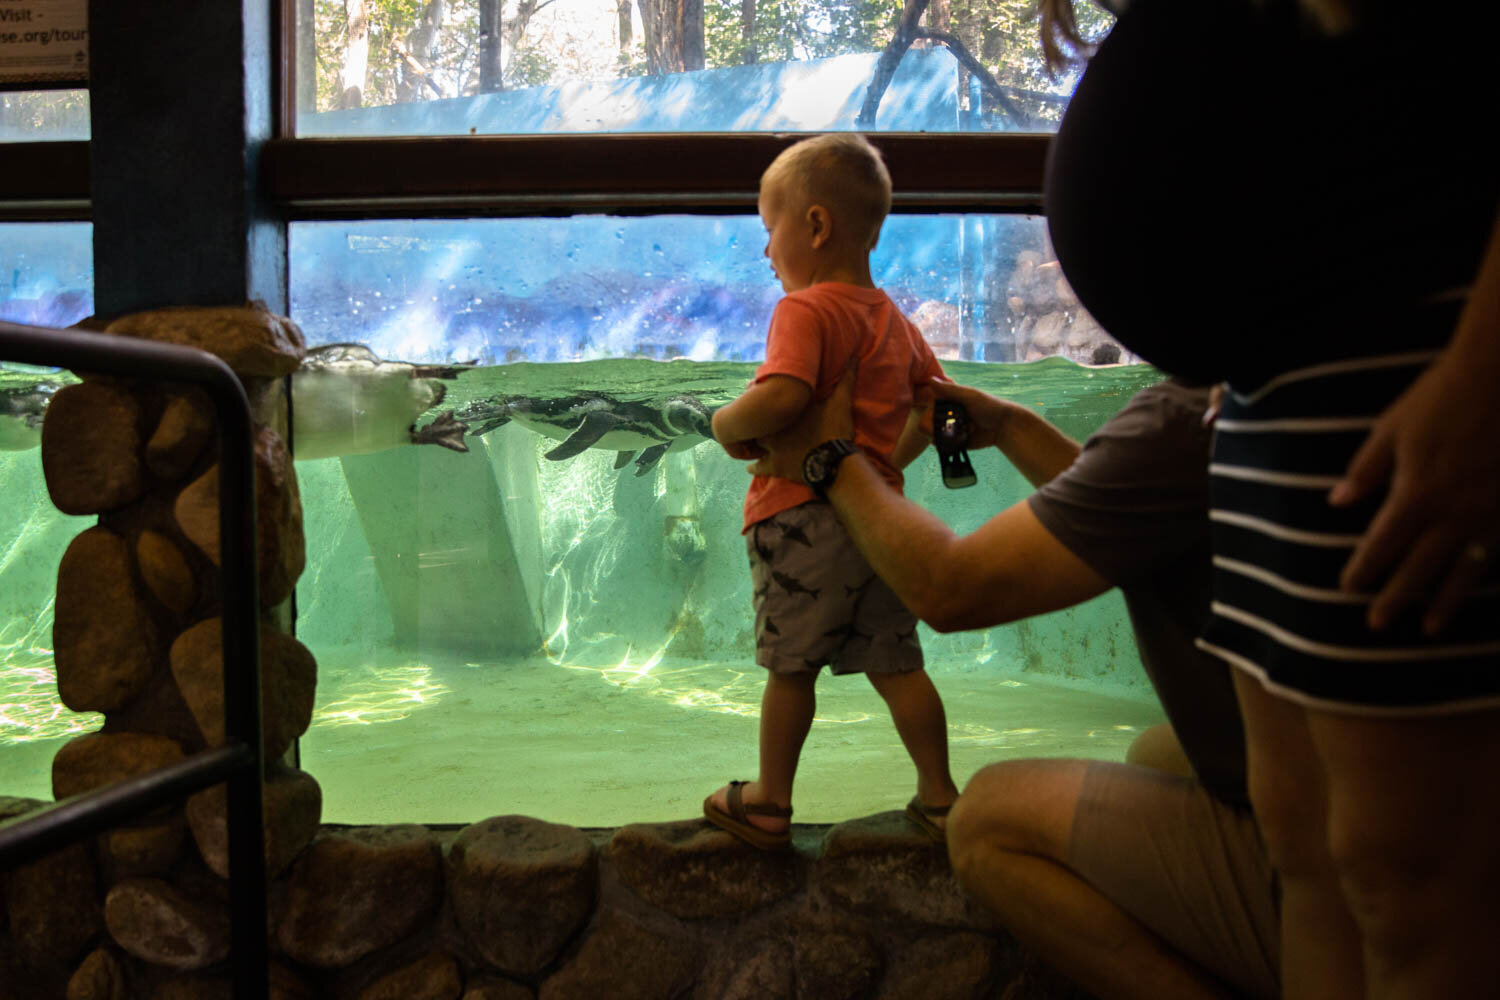 Small child being held up at the aquarium walls to watch the penguins swim. Dad holding him while pregnant mom stands just behind them showing off her belly.